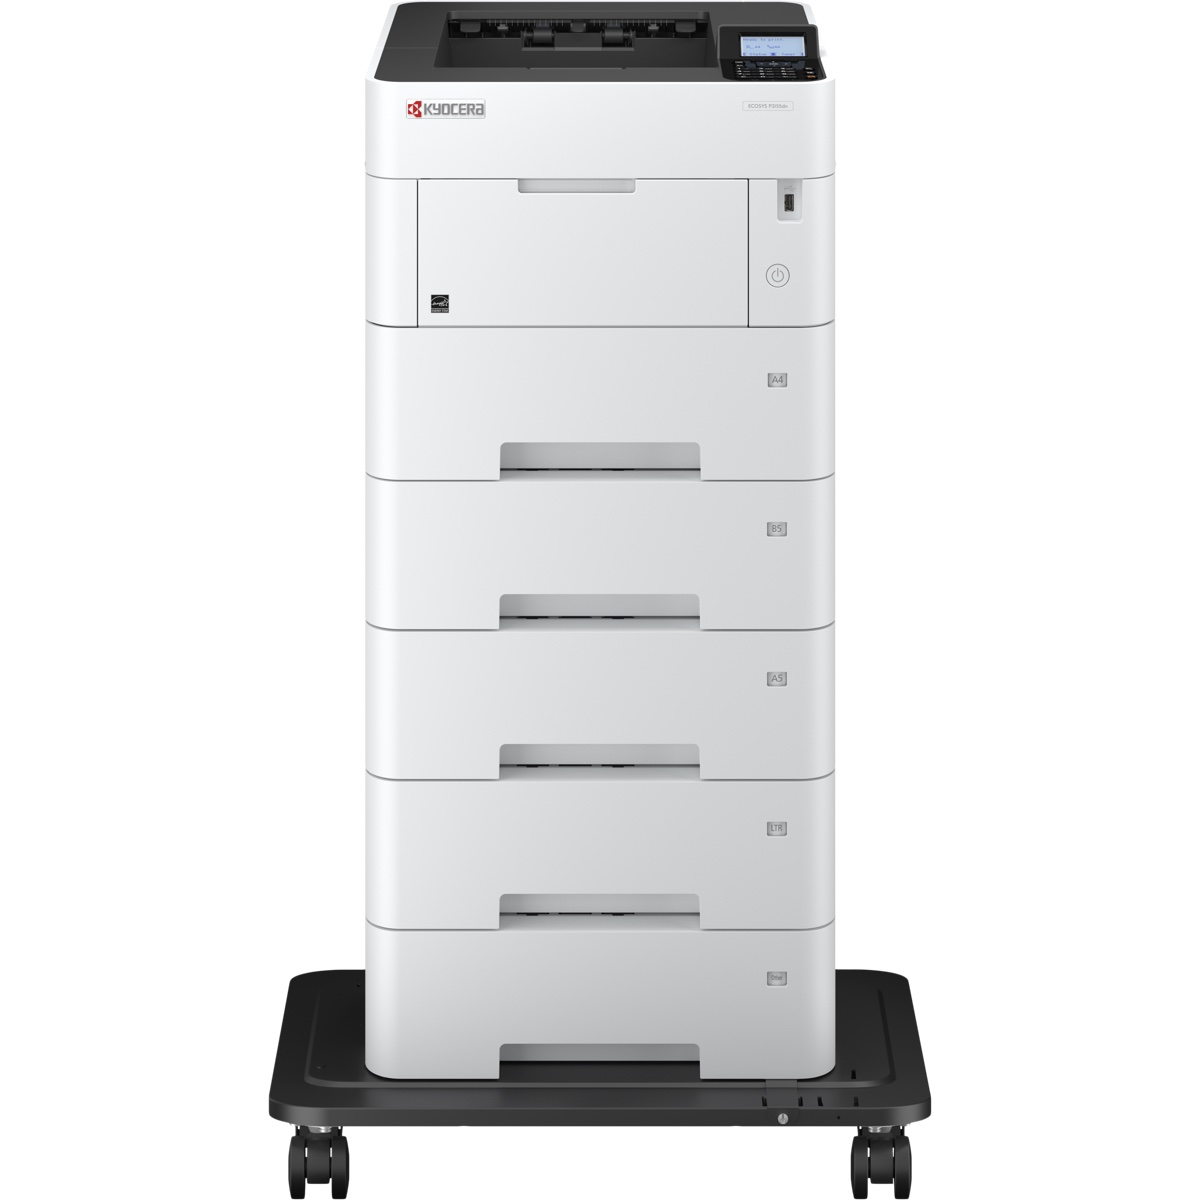 Kyocera ECOSYS P3155dn Printer